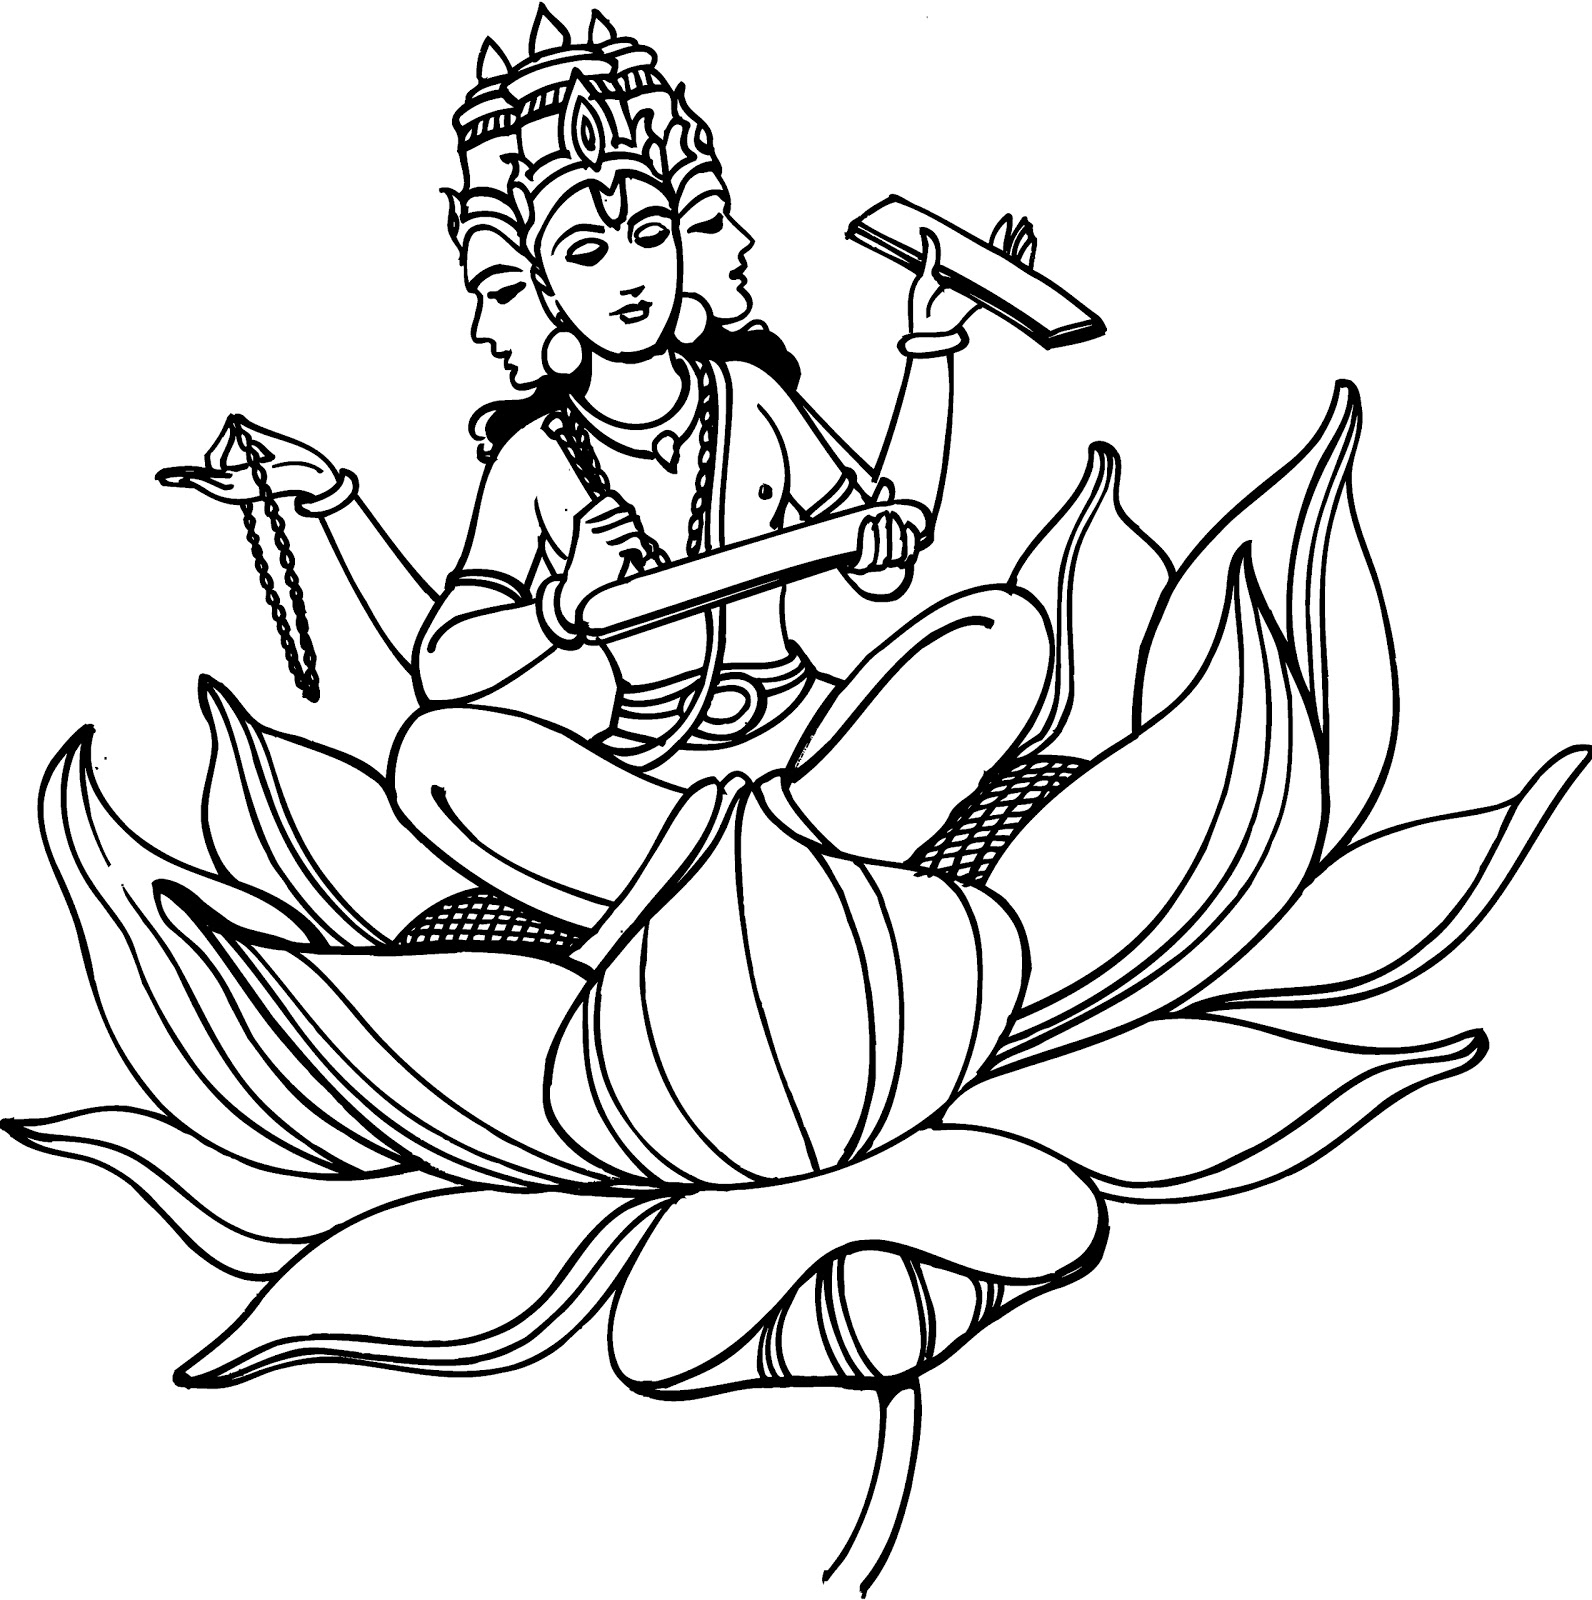 Line art hindu gods : All in one wallpapers pencil drawings hindu gods